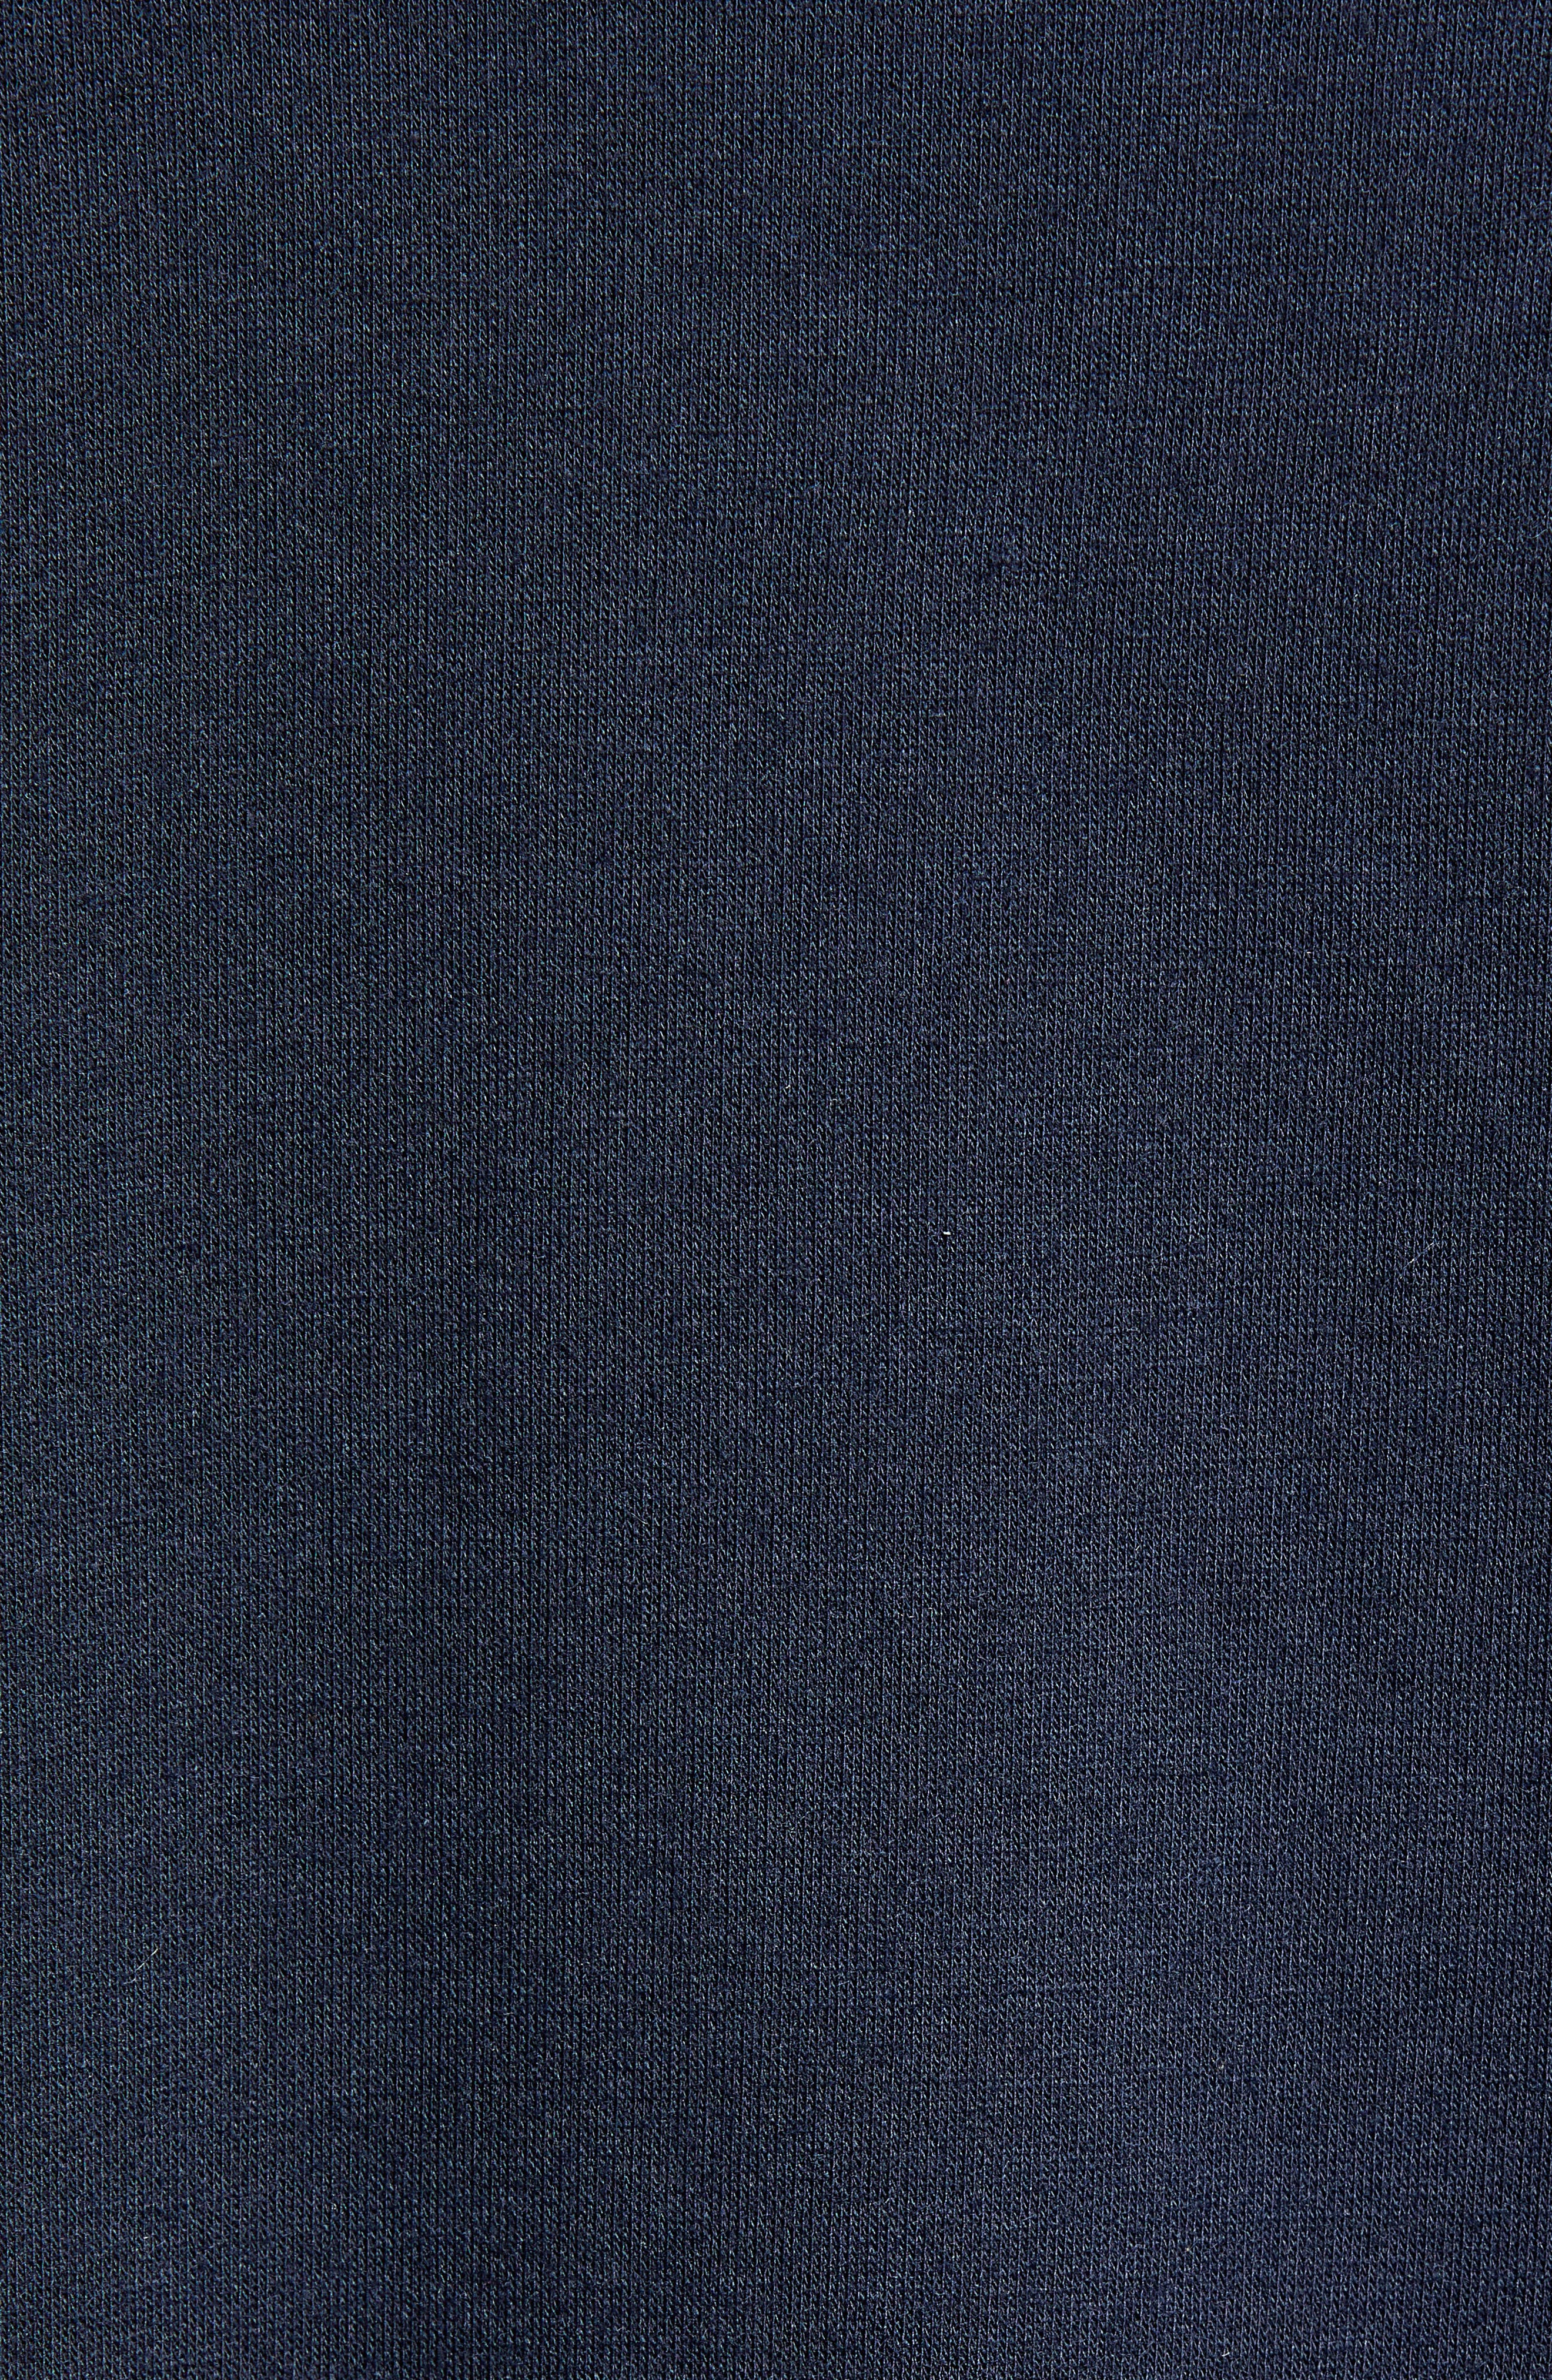 Eat, Drink & Be Merry Pullover,                             Alternate thumbnail 5, color,                             NAVY